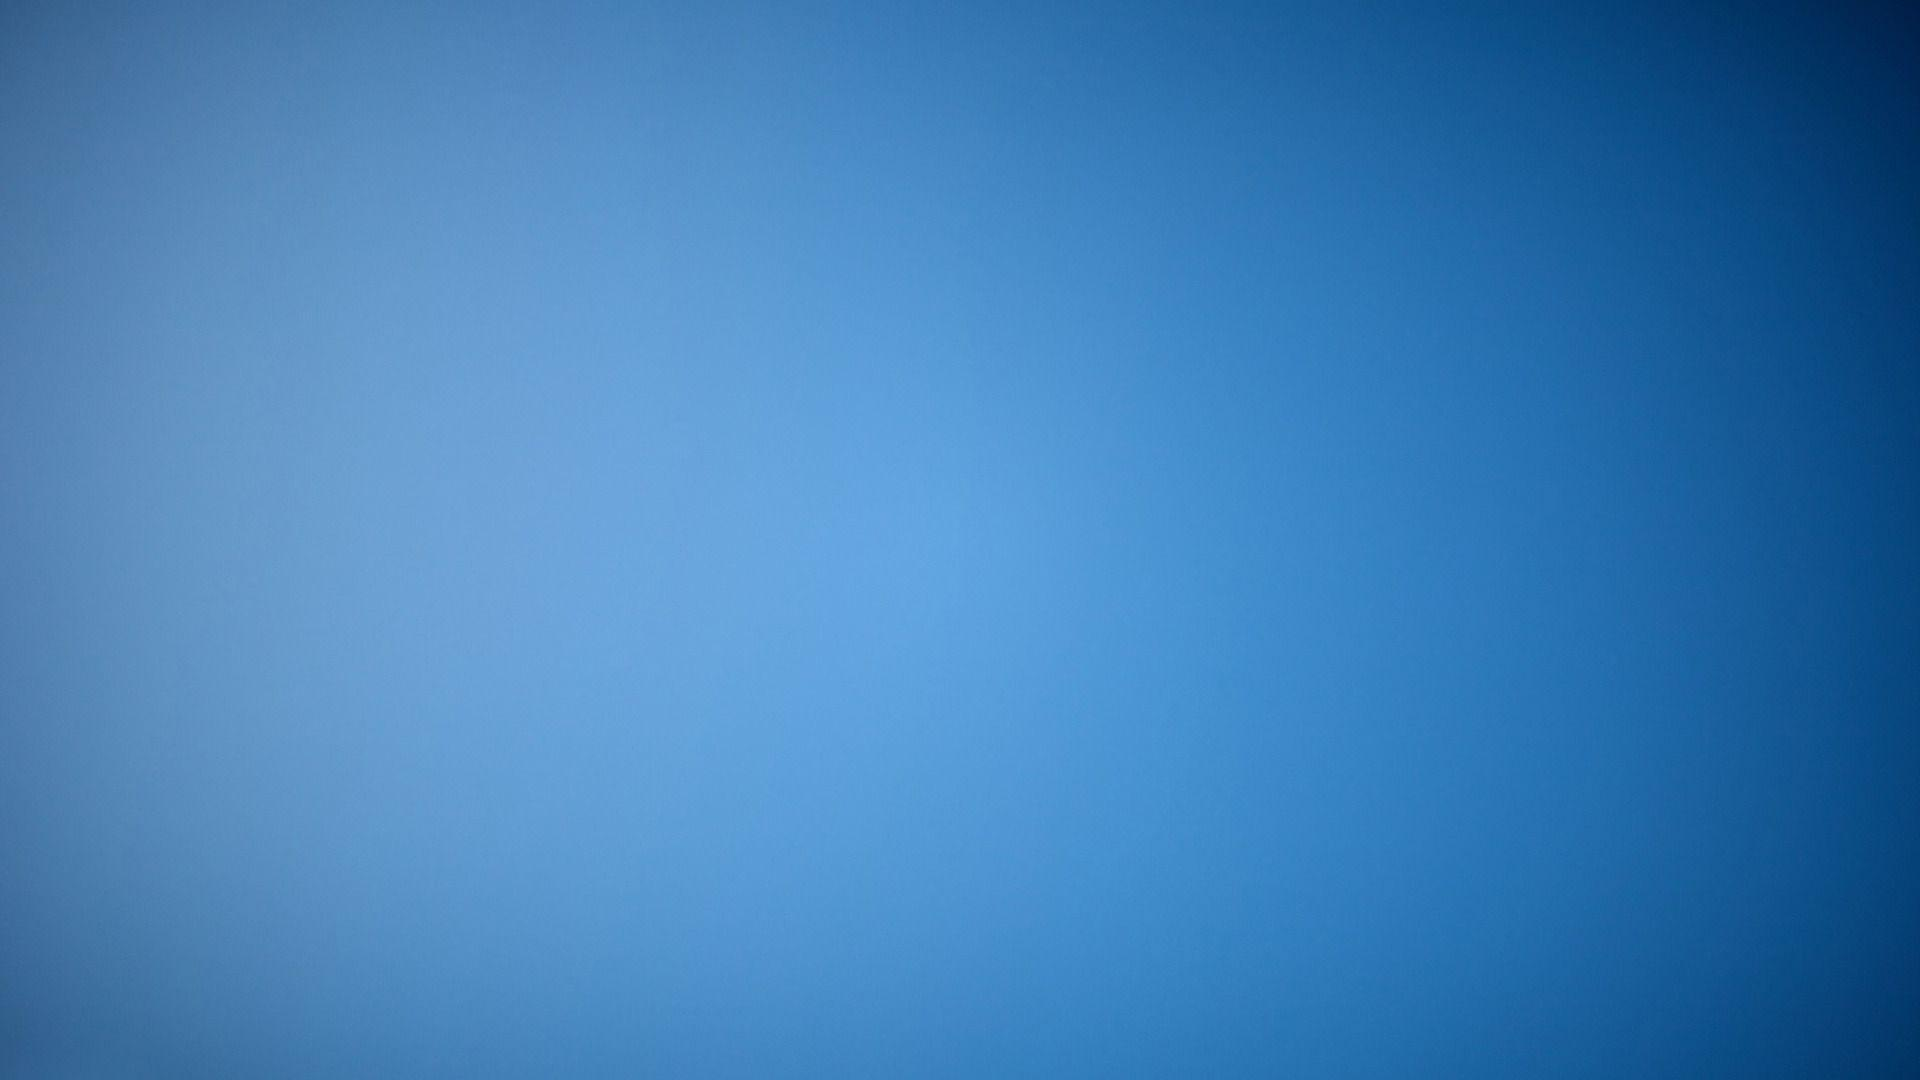 Blue Gradient Wallpapers And Background